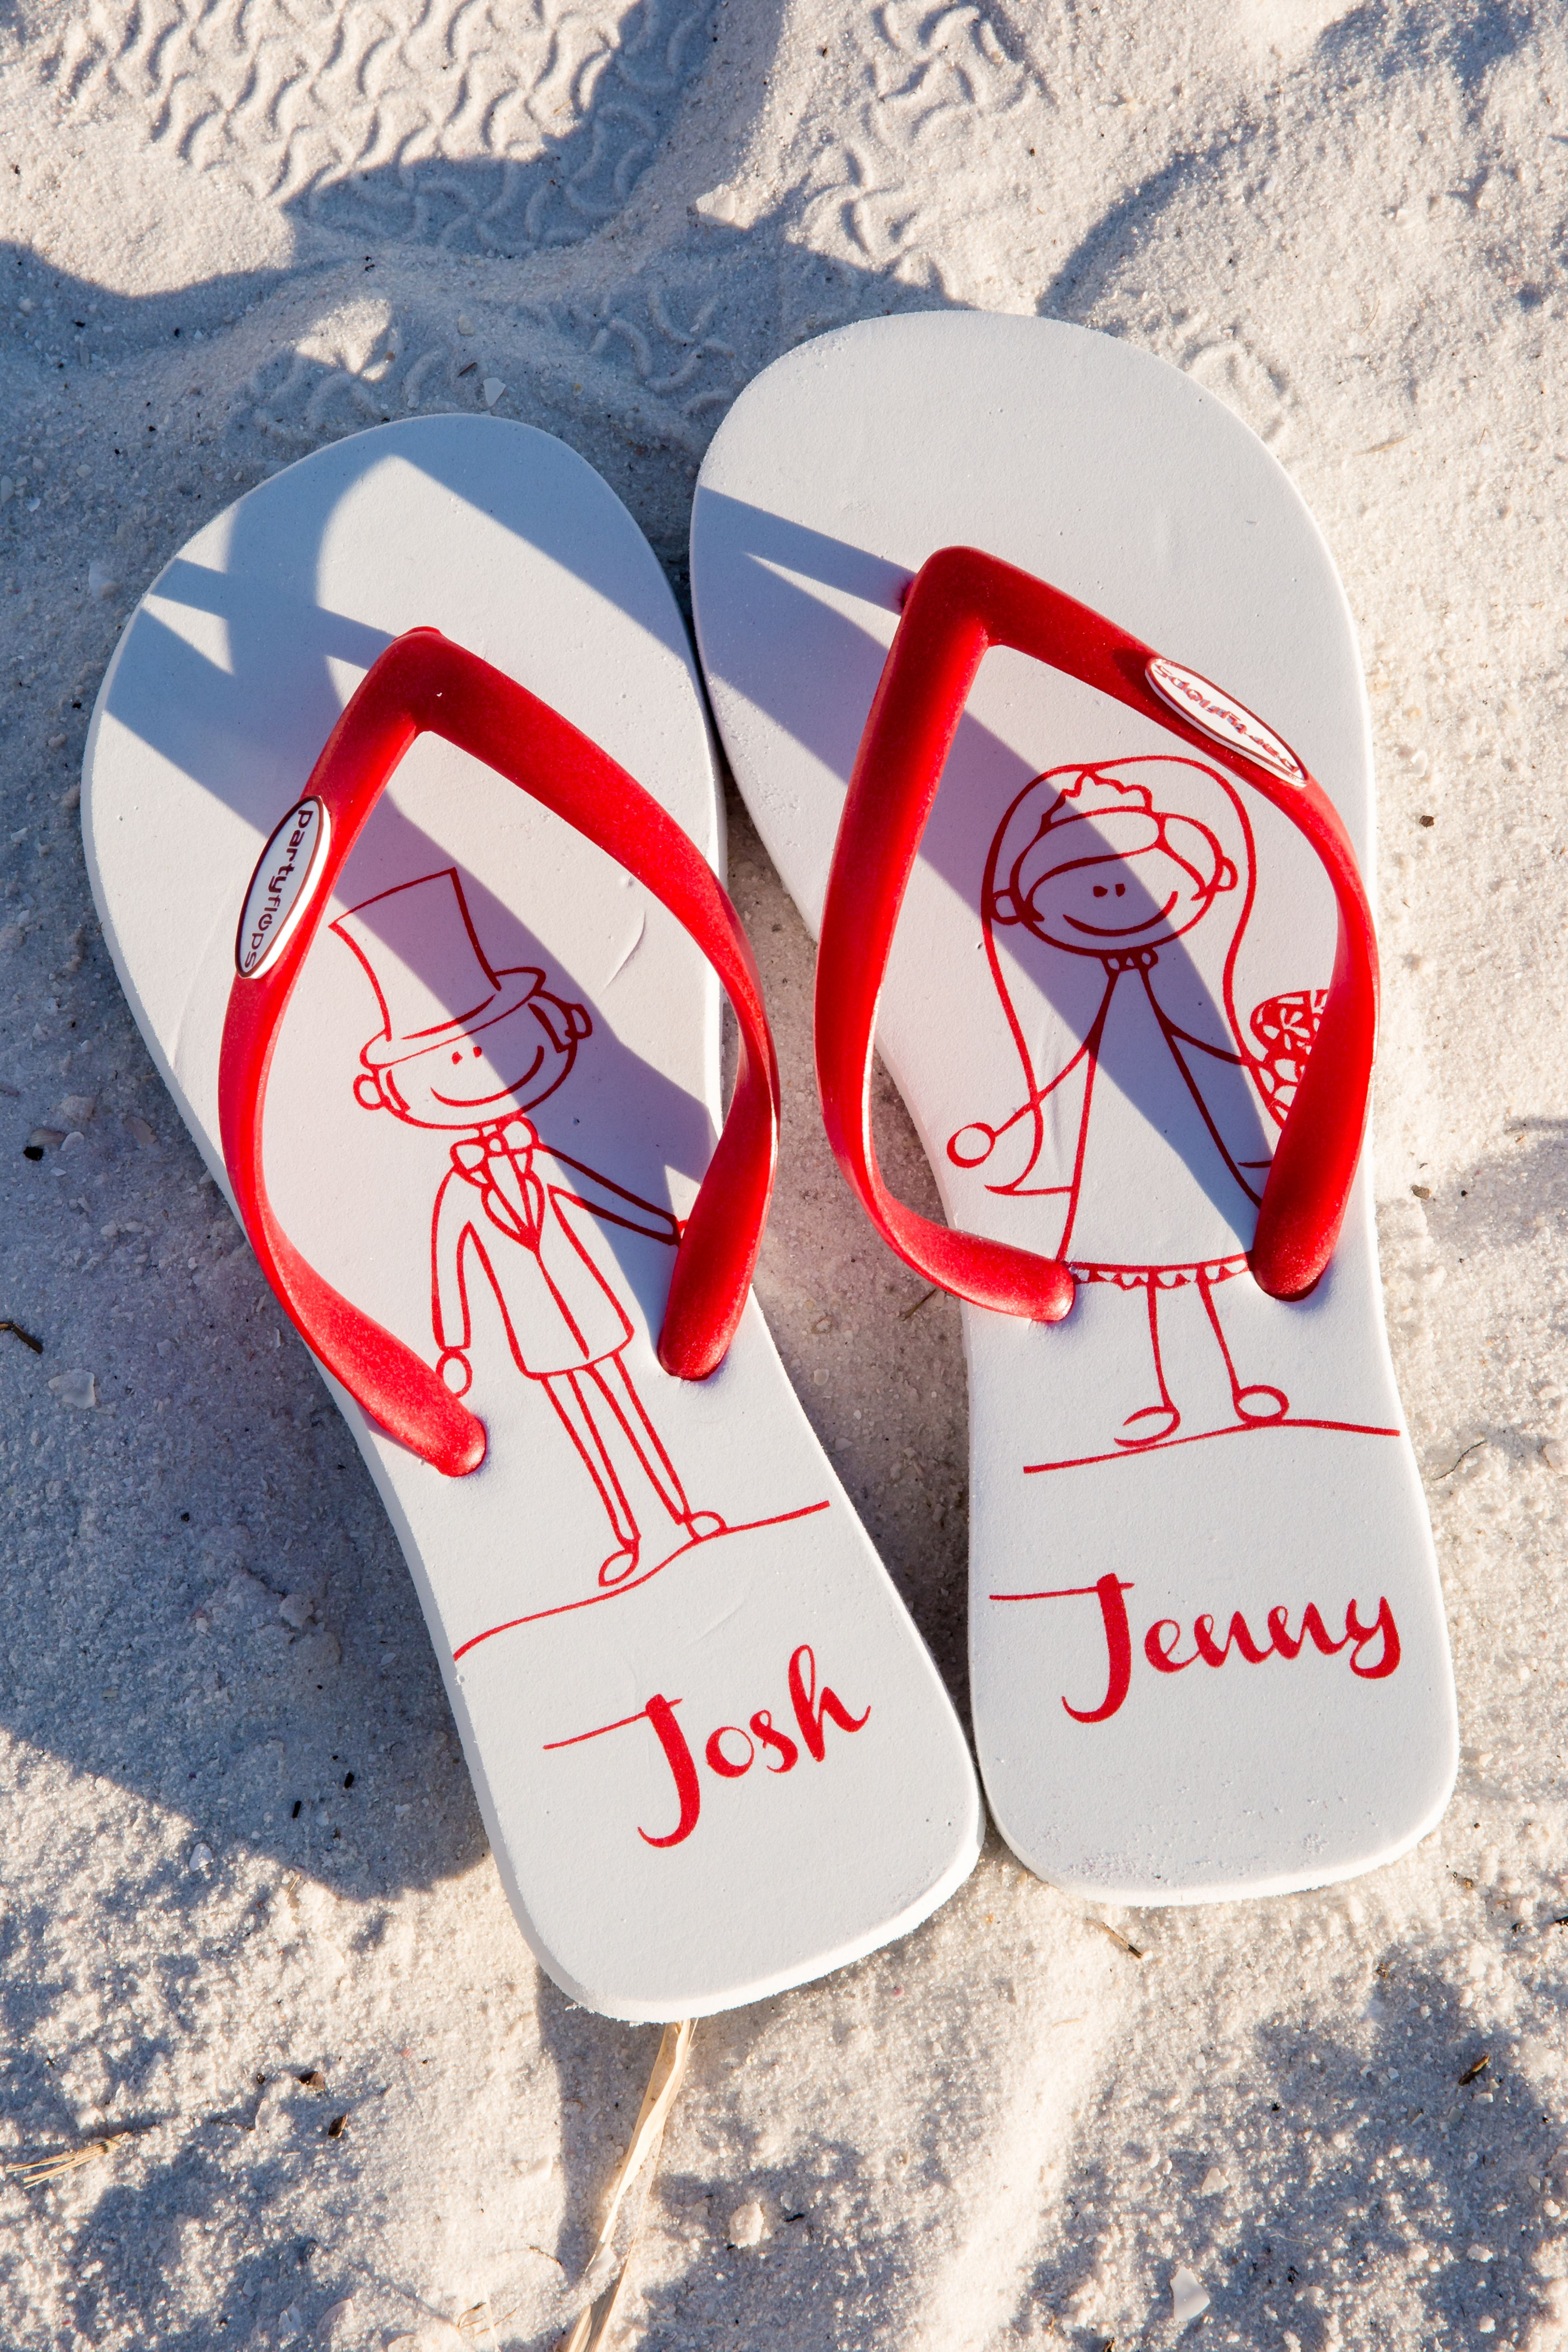 Personalized Flip Flop Wedding Favors | Just in case | Pinterest ...